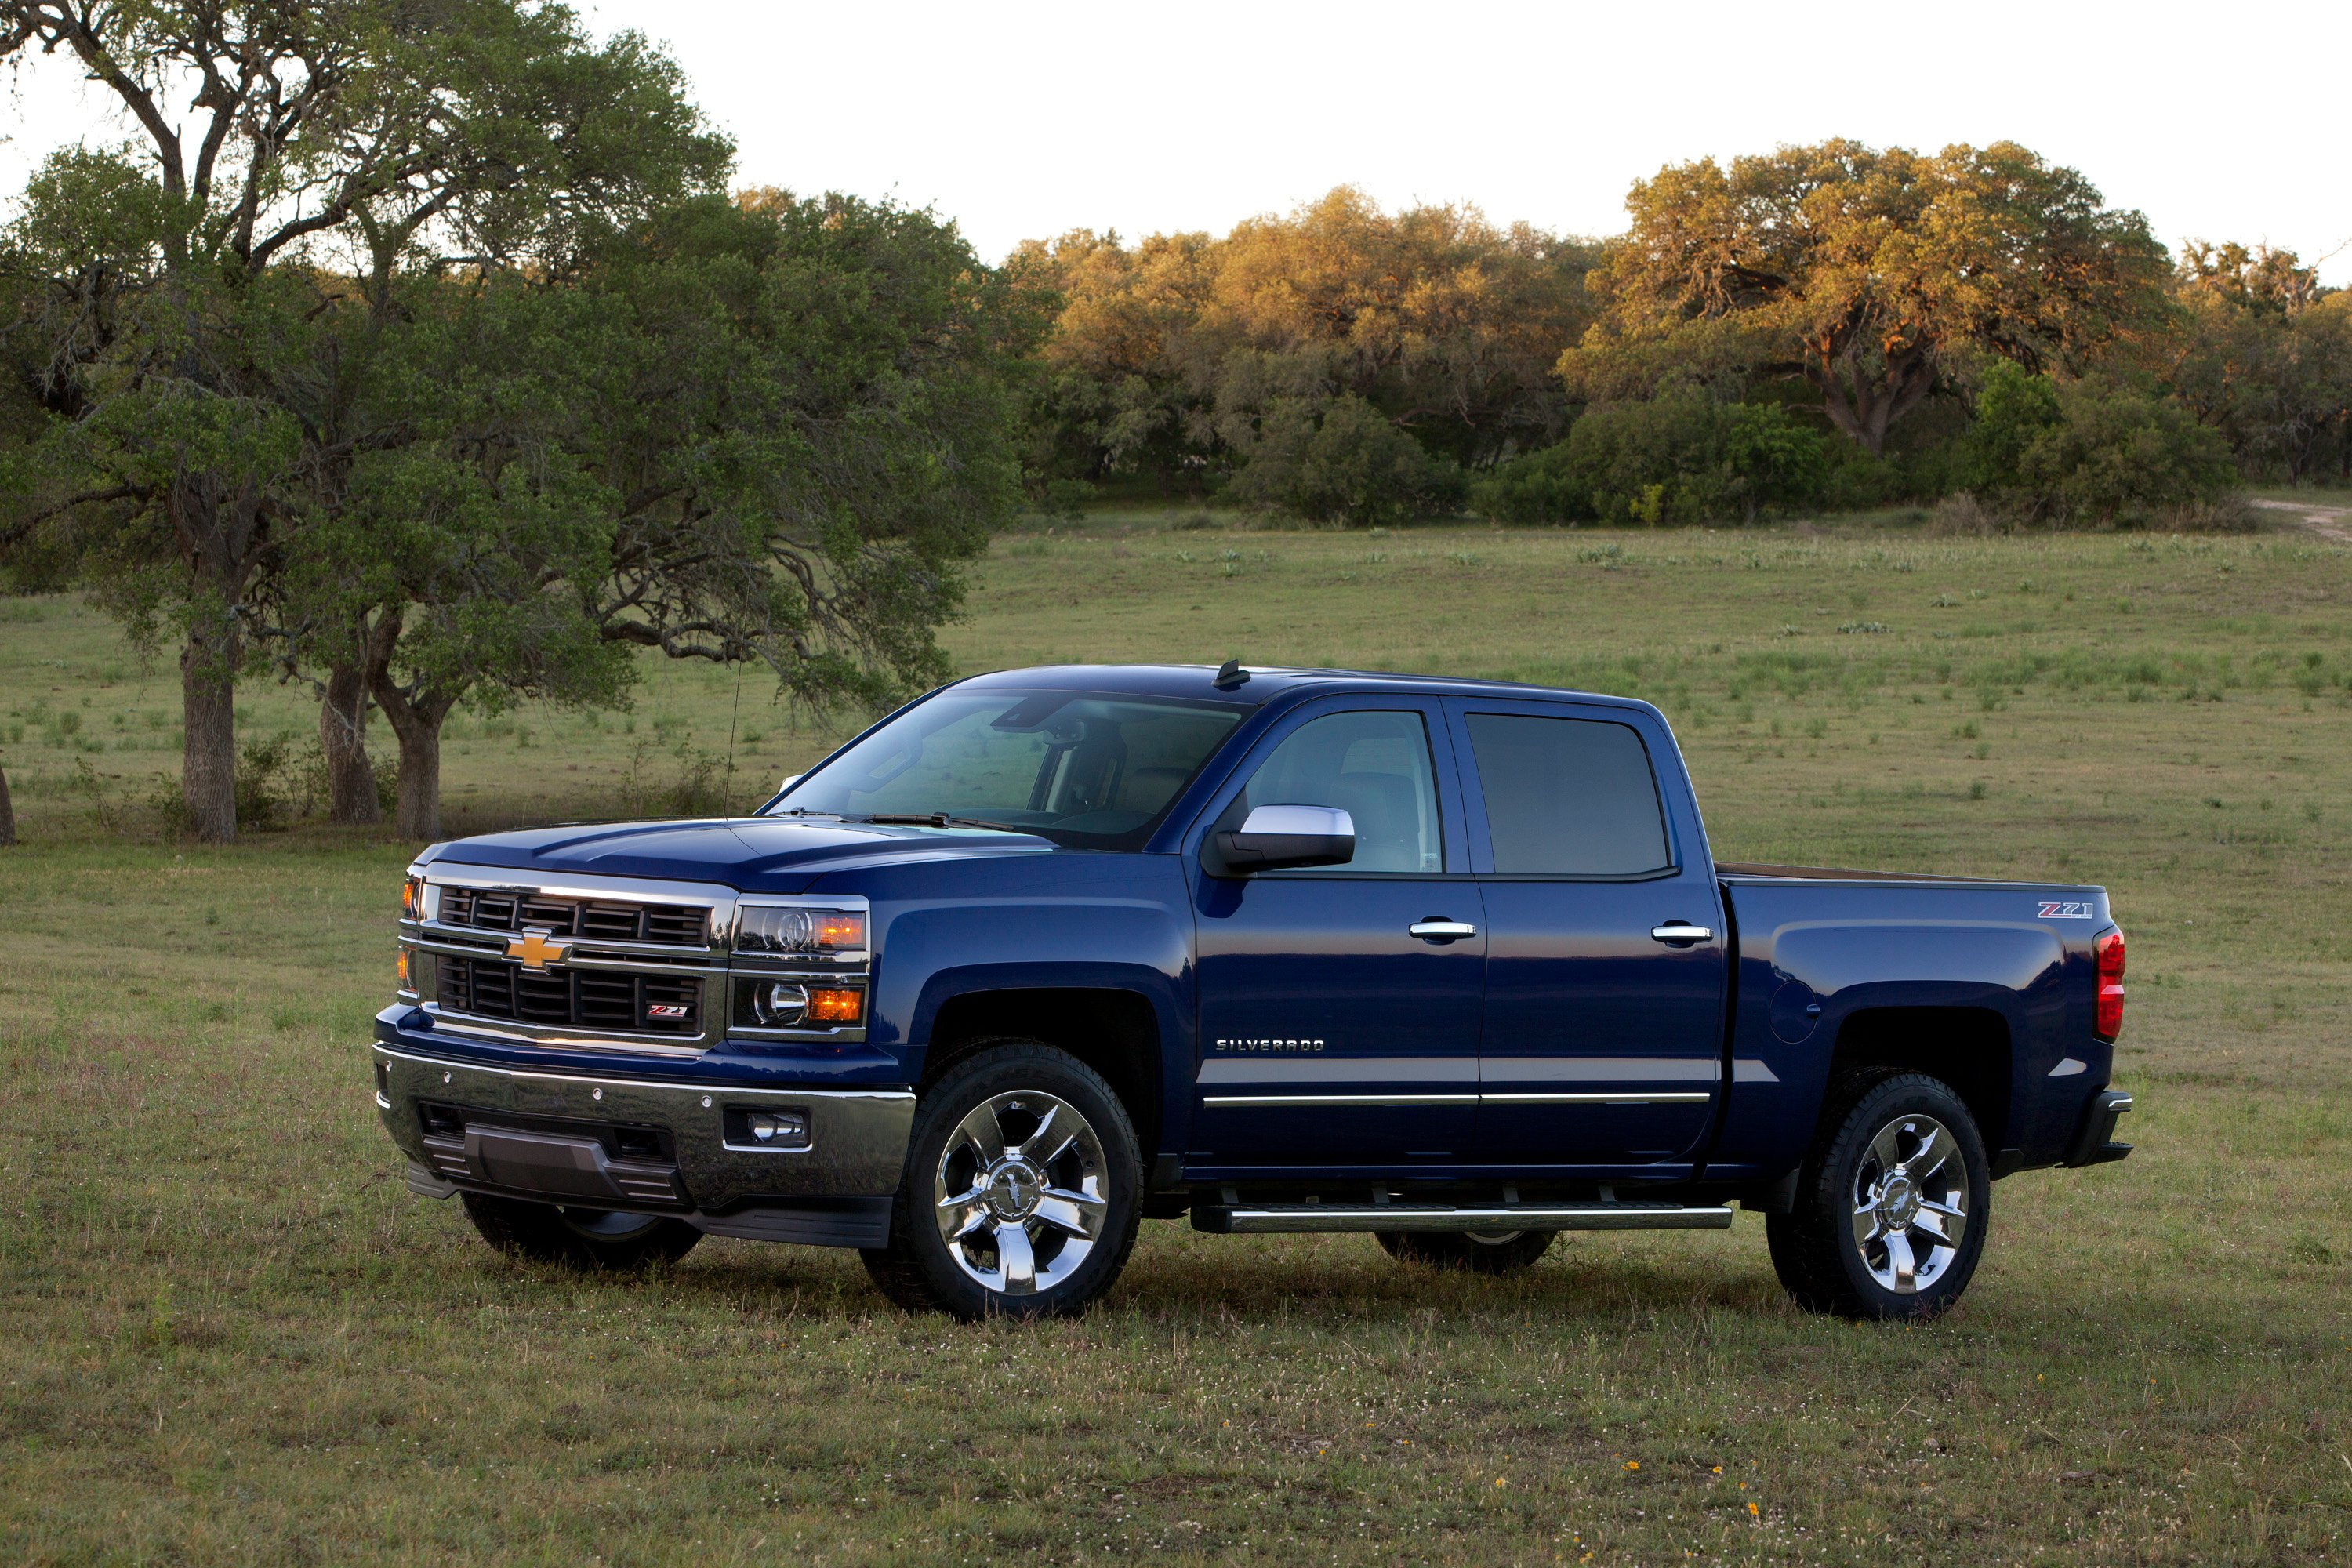 Five New GM Recalls Affect 2.7M Vehicles